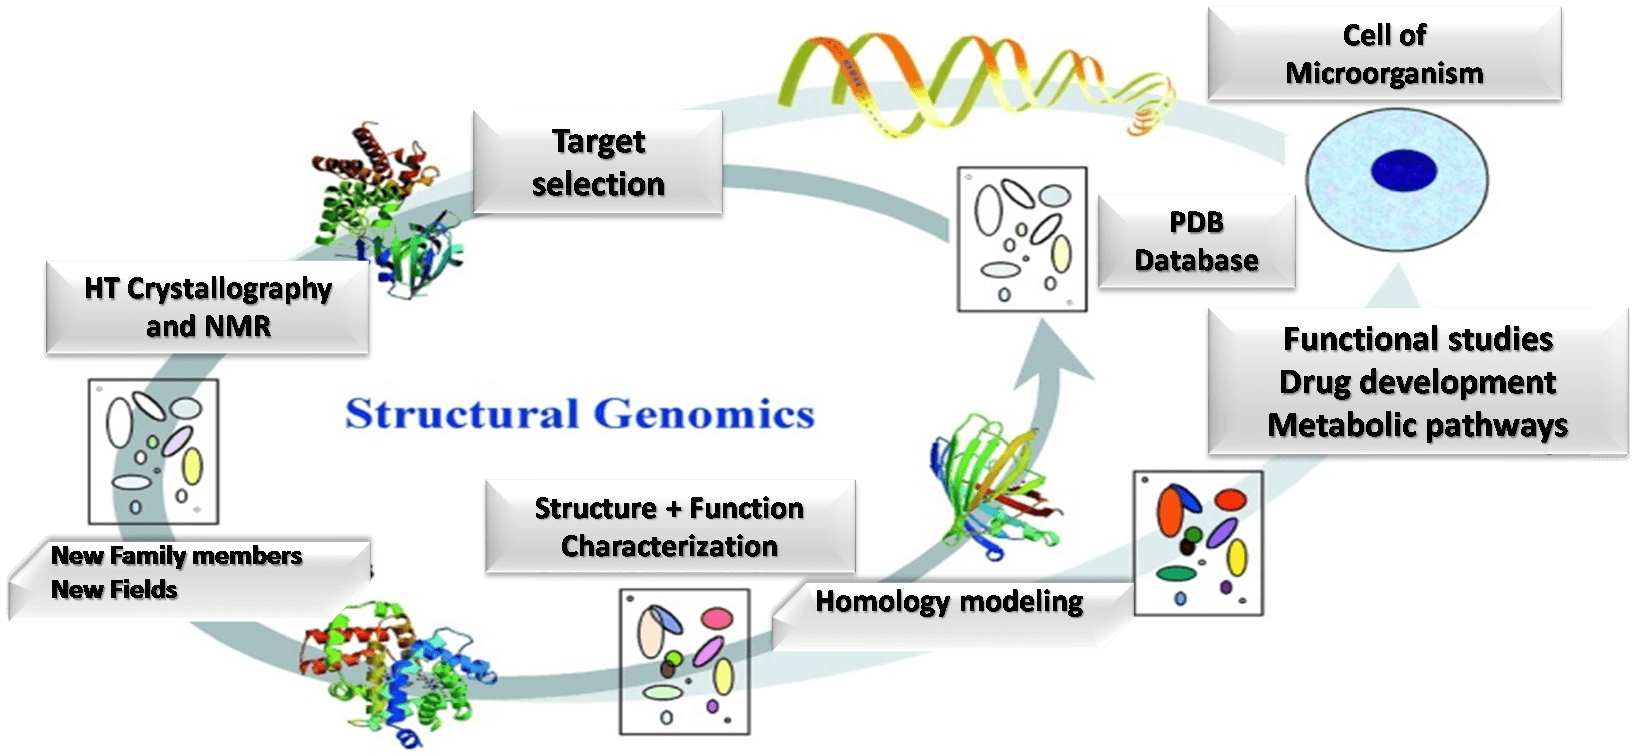 Fig. 1. Structural Genomics